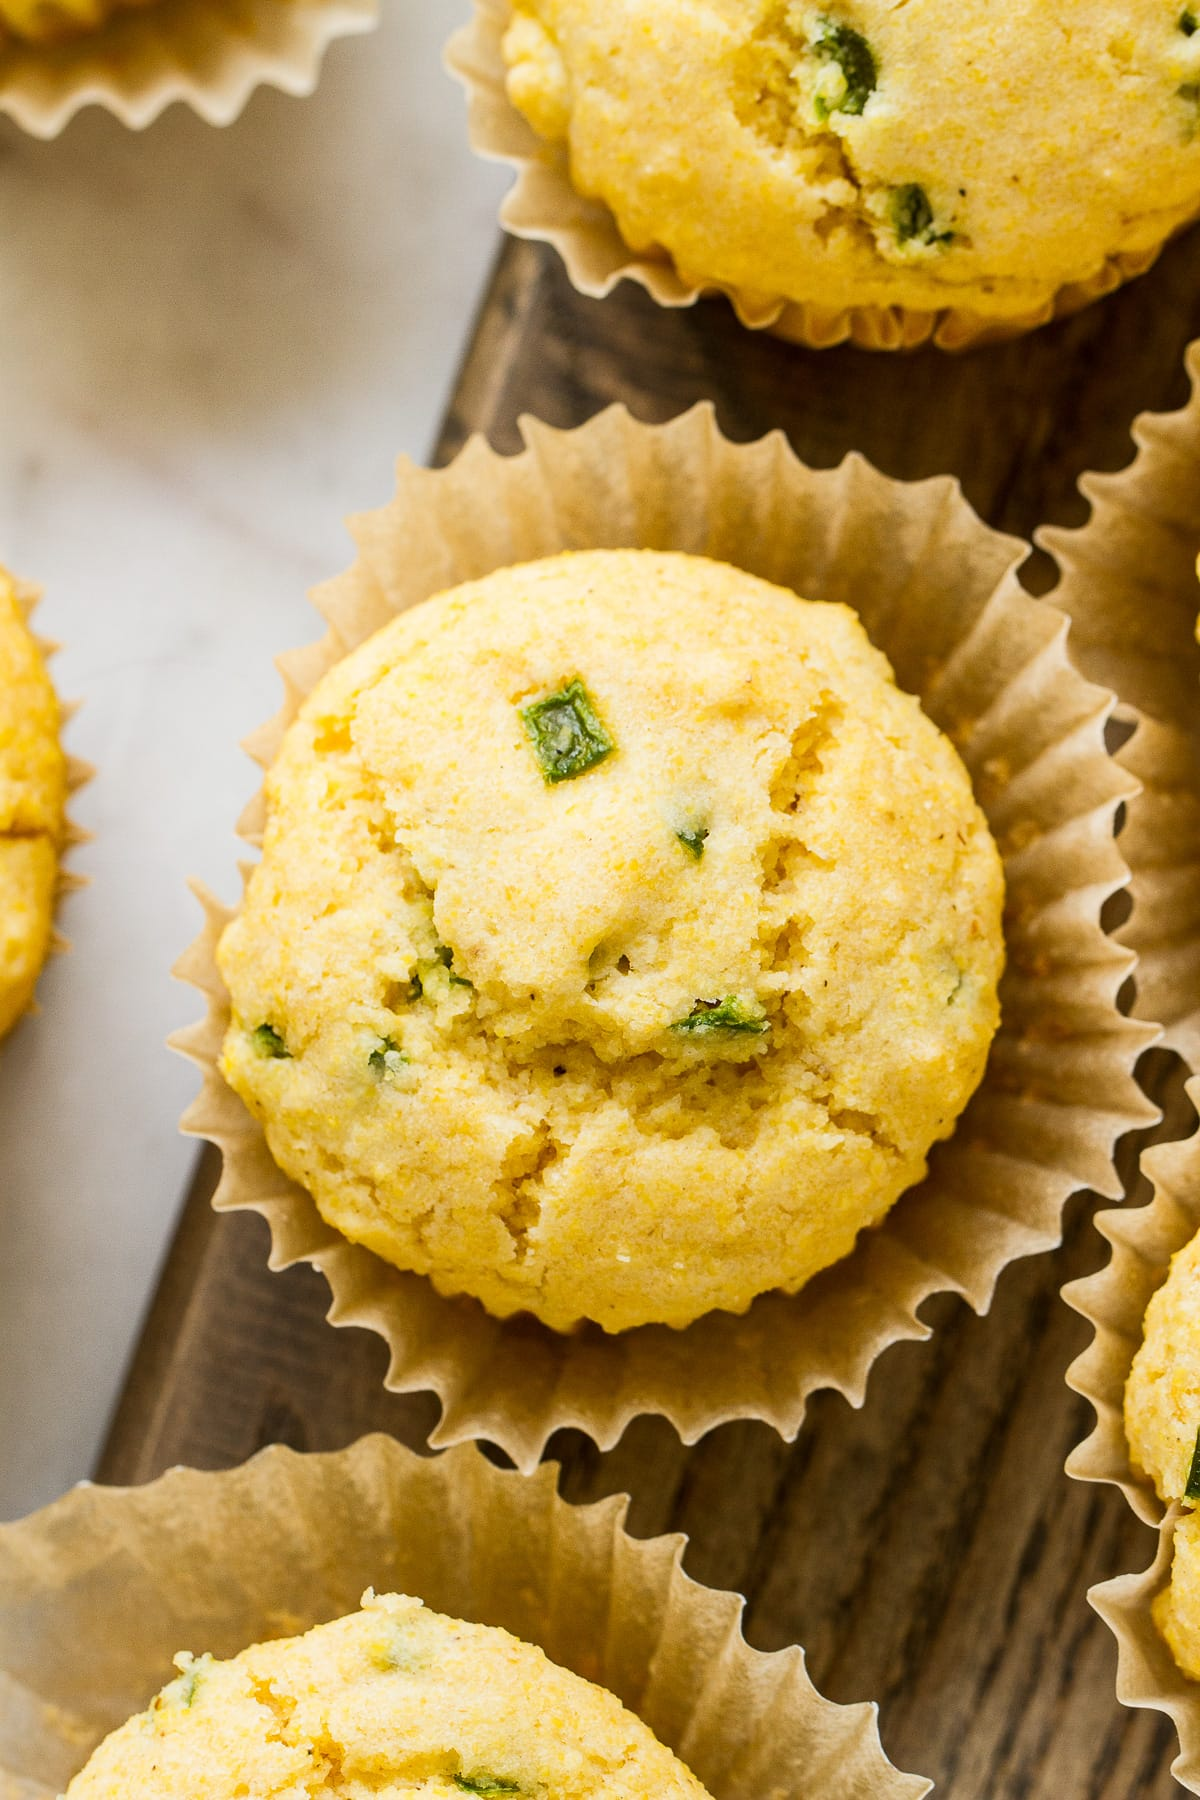 top down, up close, view of vegan corn muffins with jalapenos surrounded by other corn muffins.